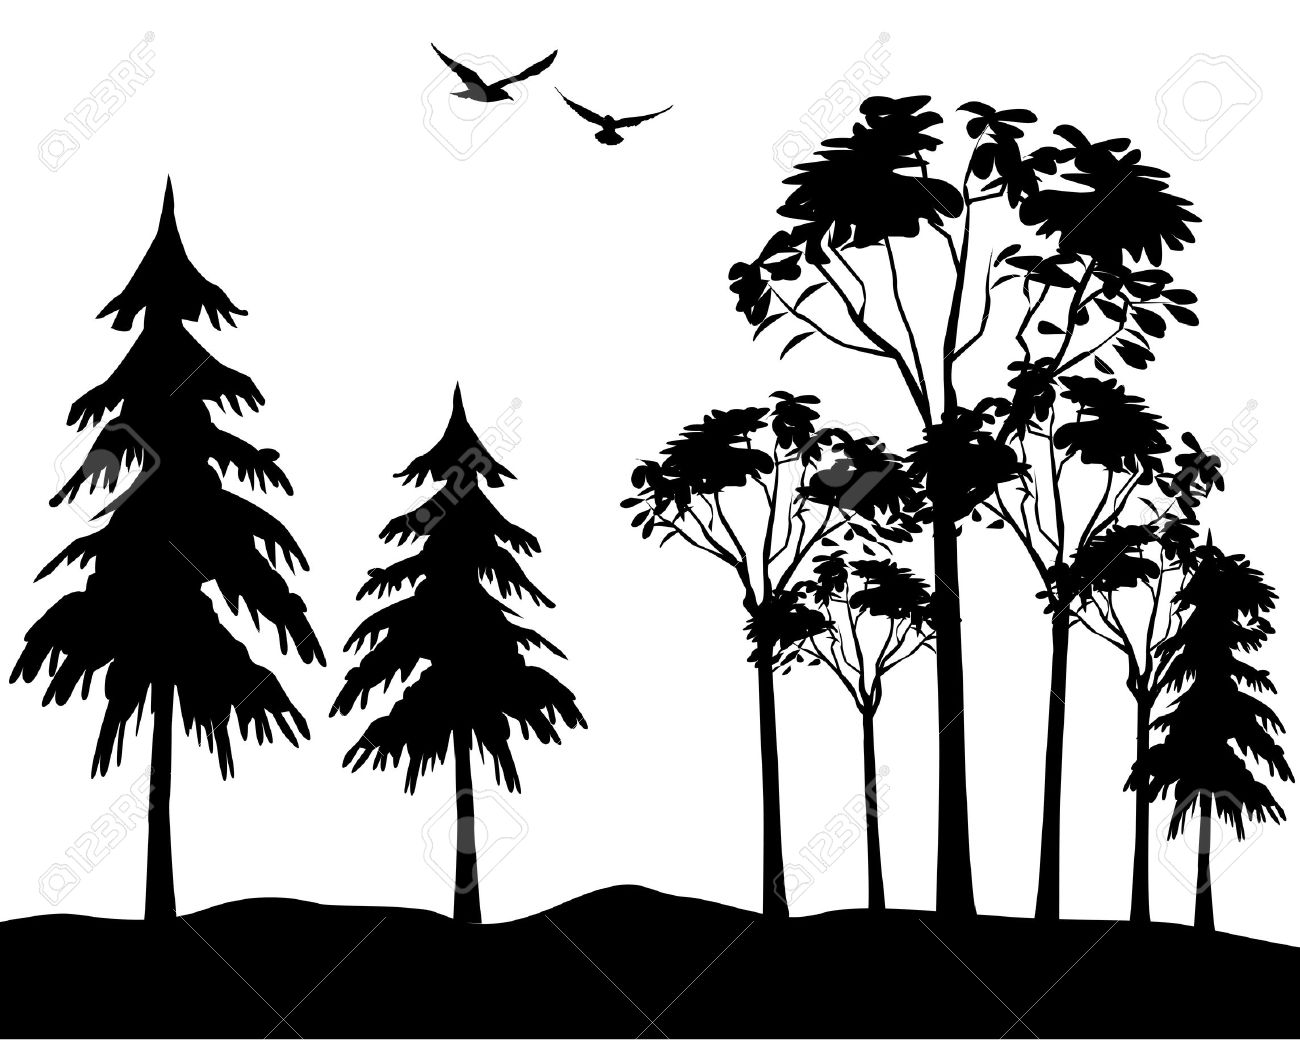 Black Silhouette Of Wood On A White Background Royalty Free Cliparts Vectors And Stock Illustration Image 7590698